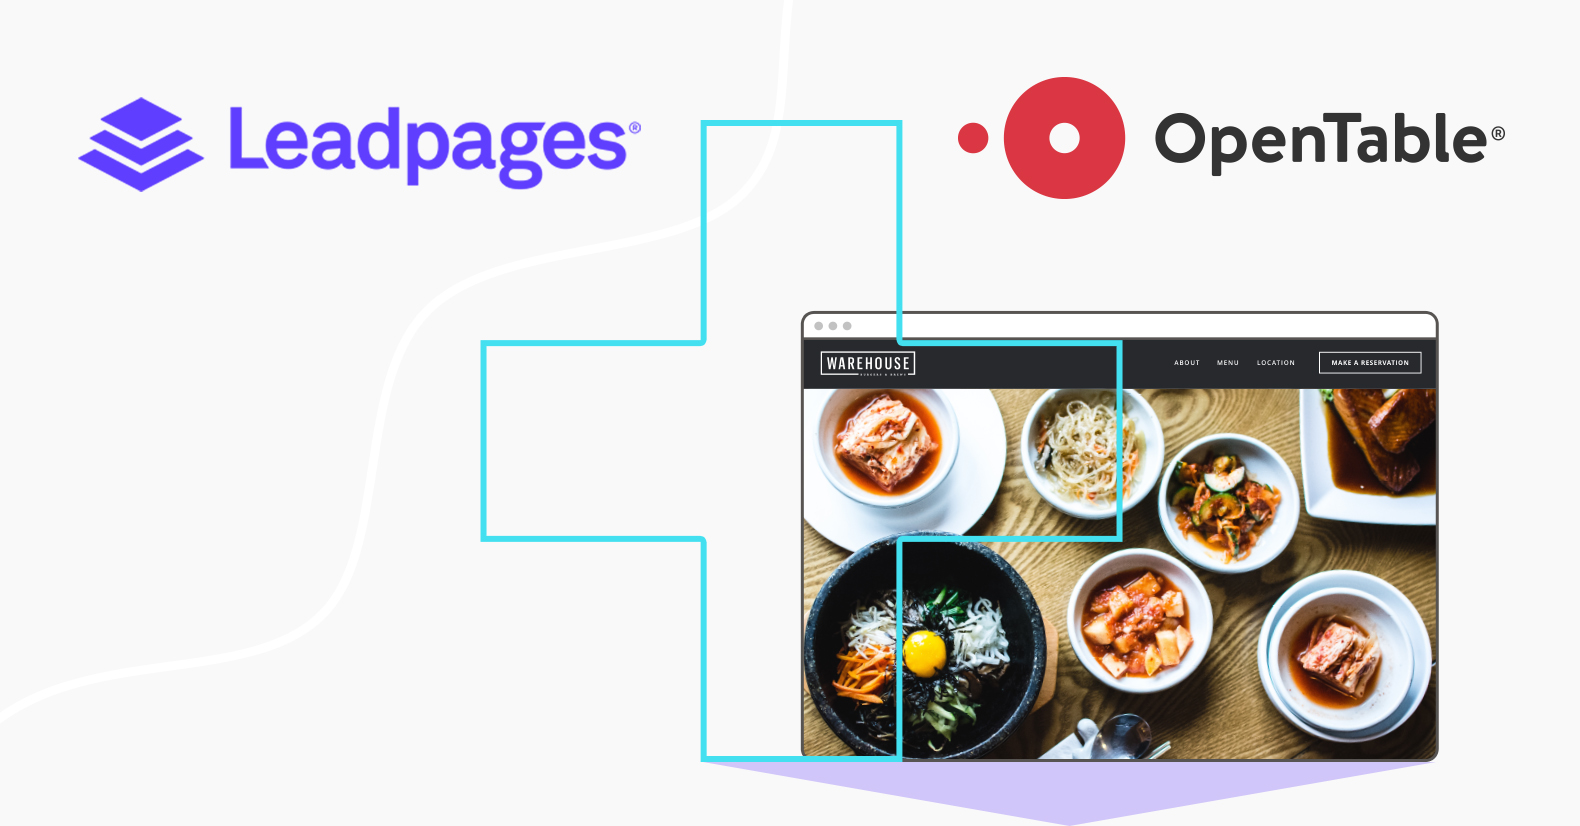 Leadpages and OpenTable feature release